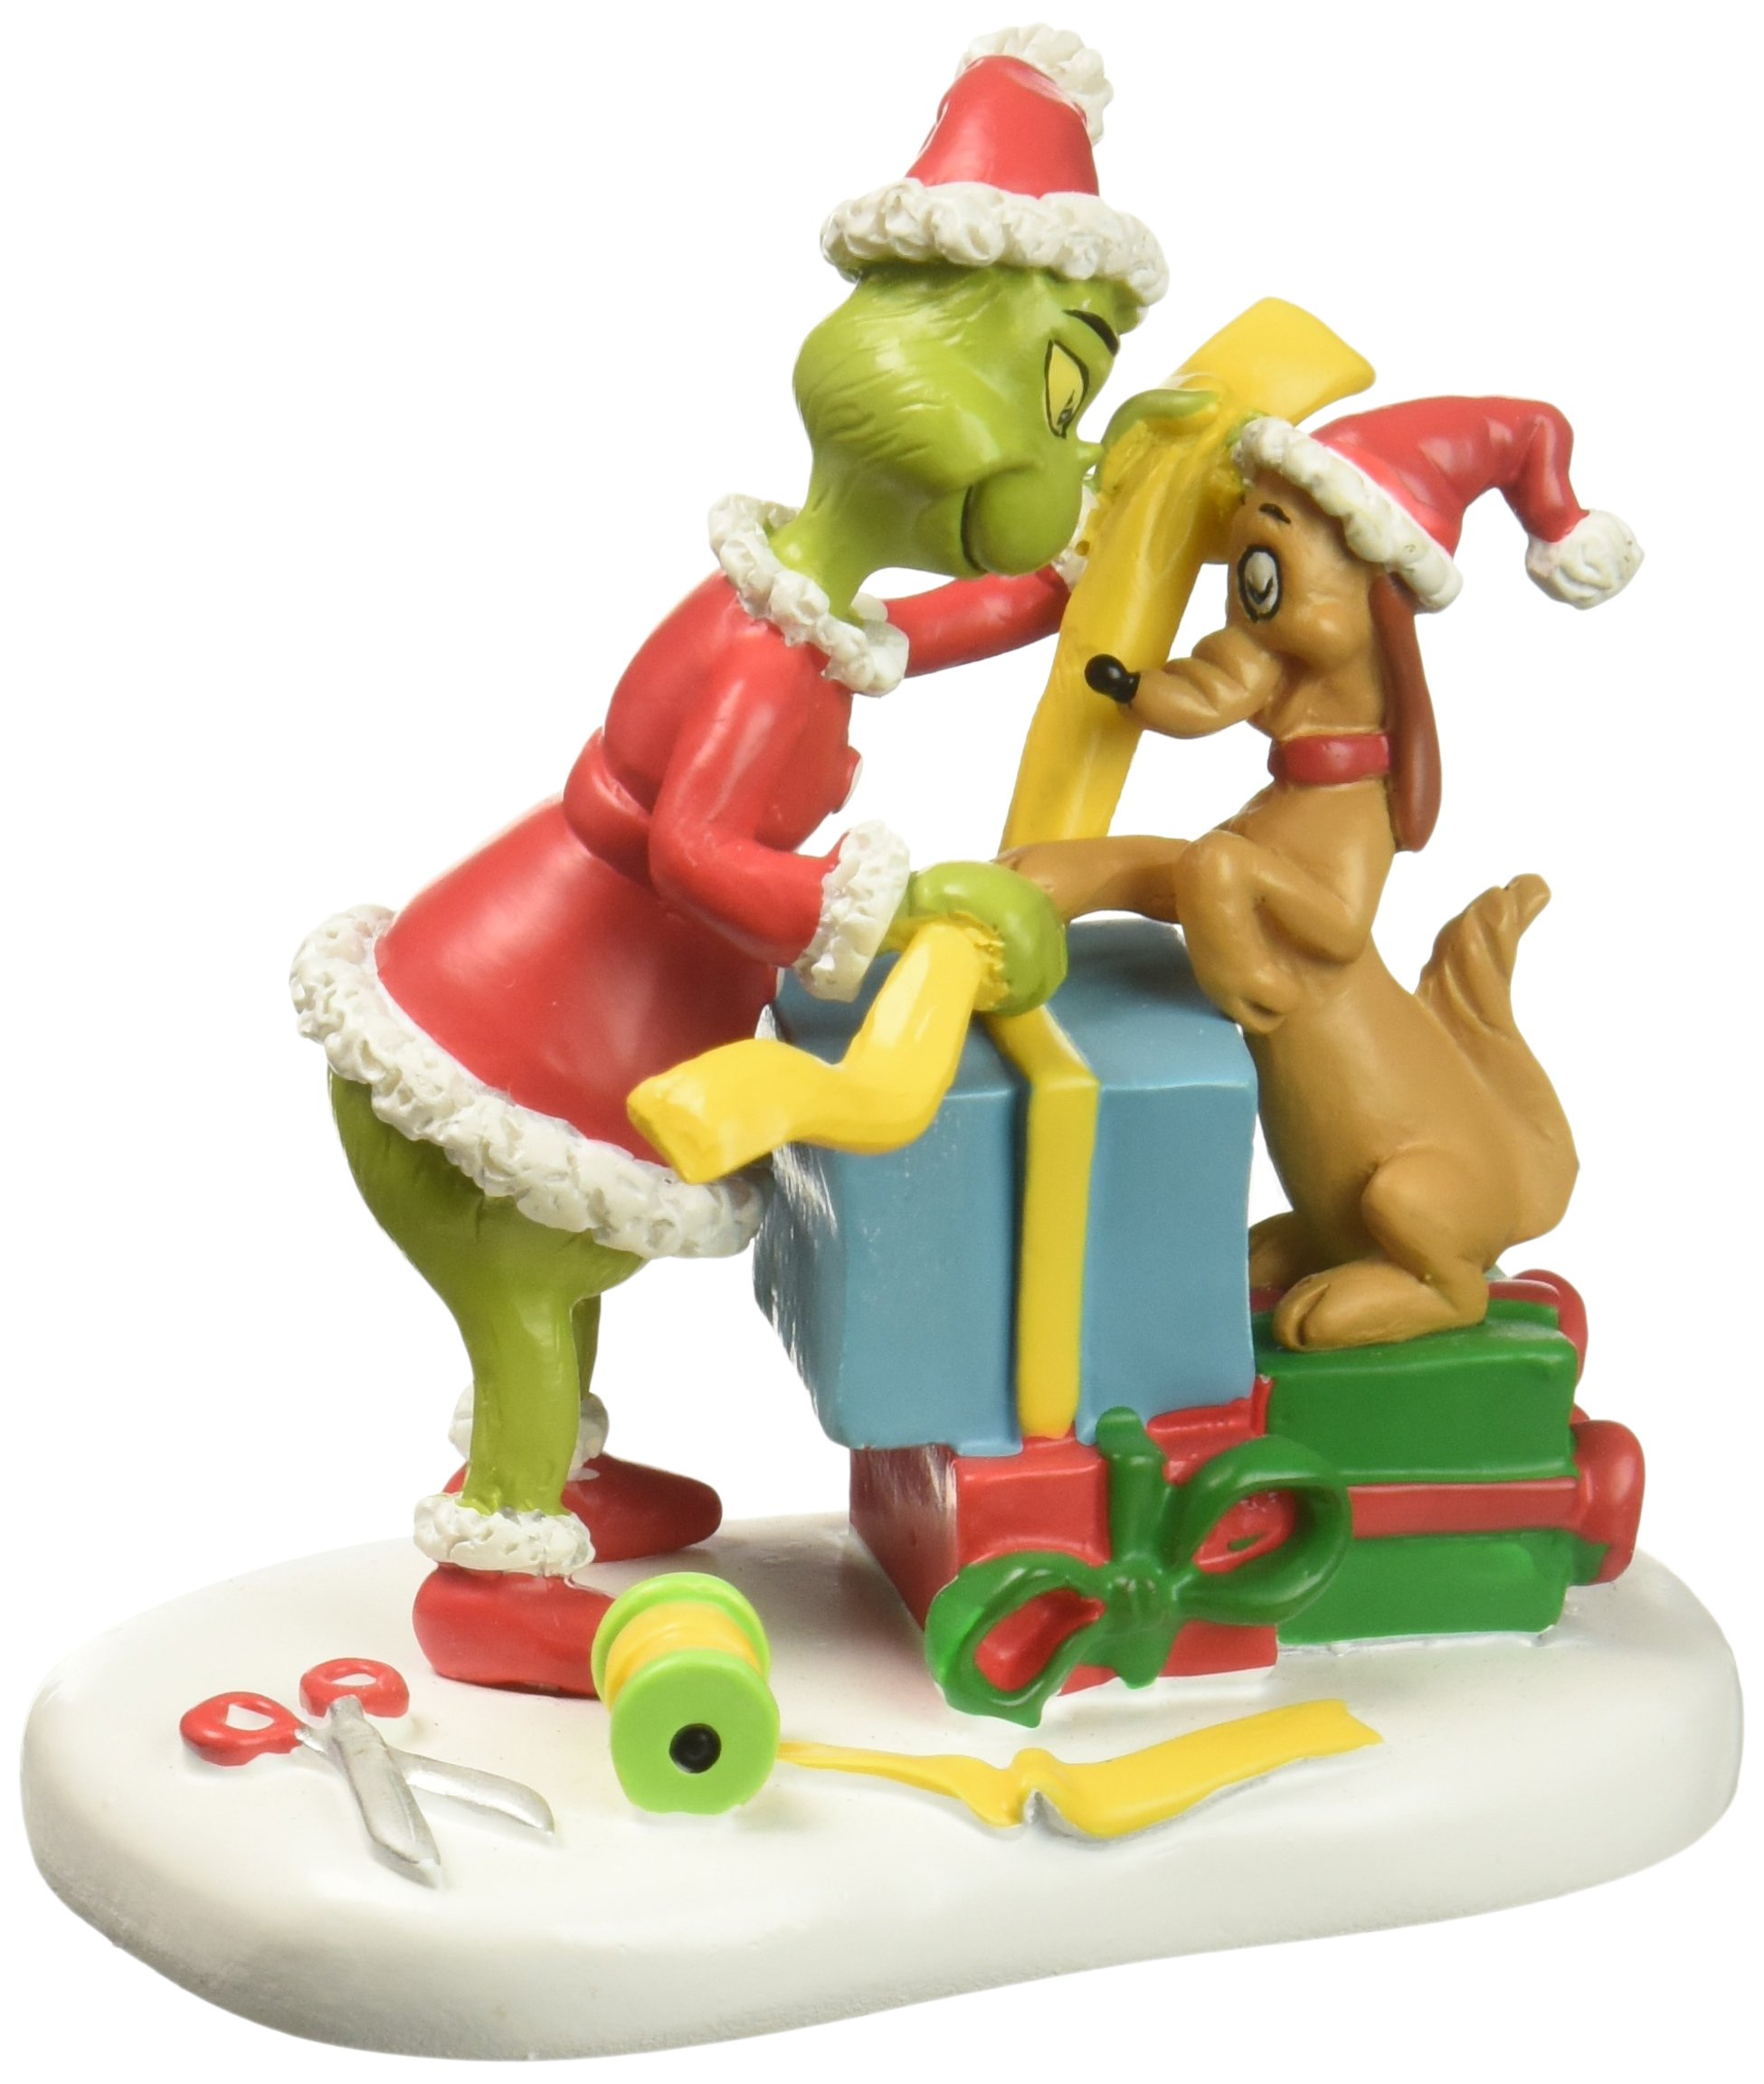 Department 56 Grinch Villages Max Lending A Helping Paw Village Accessory Figurine